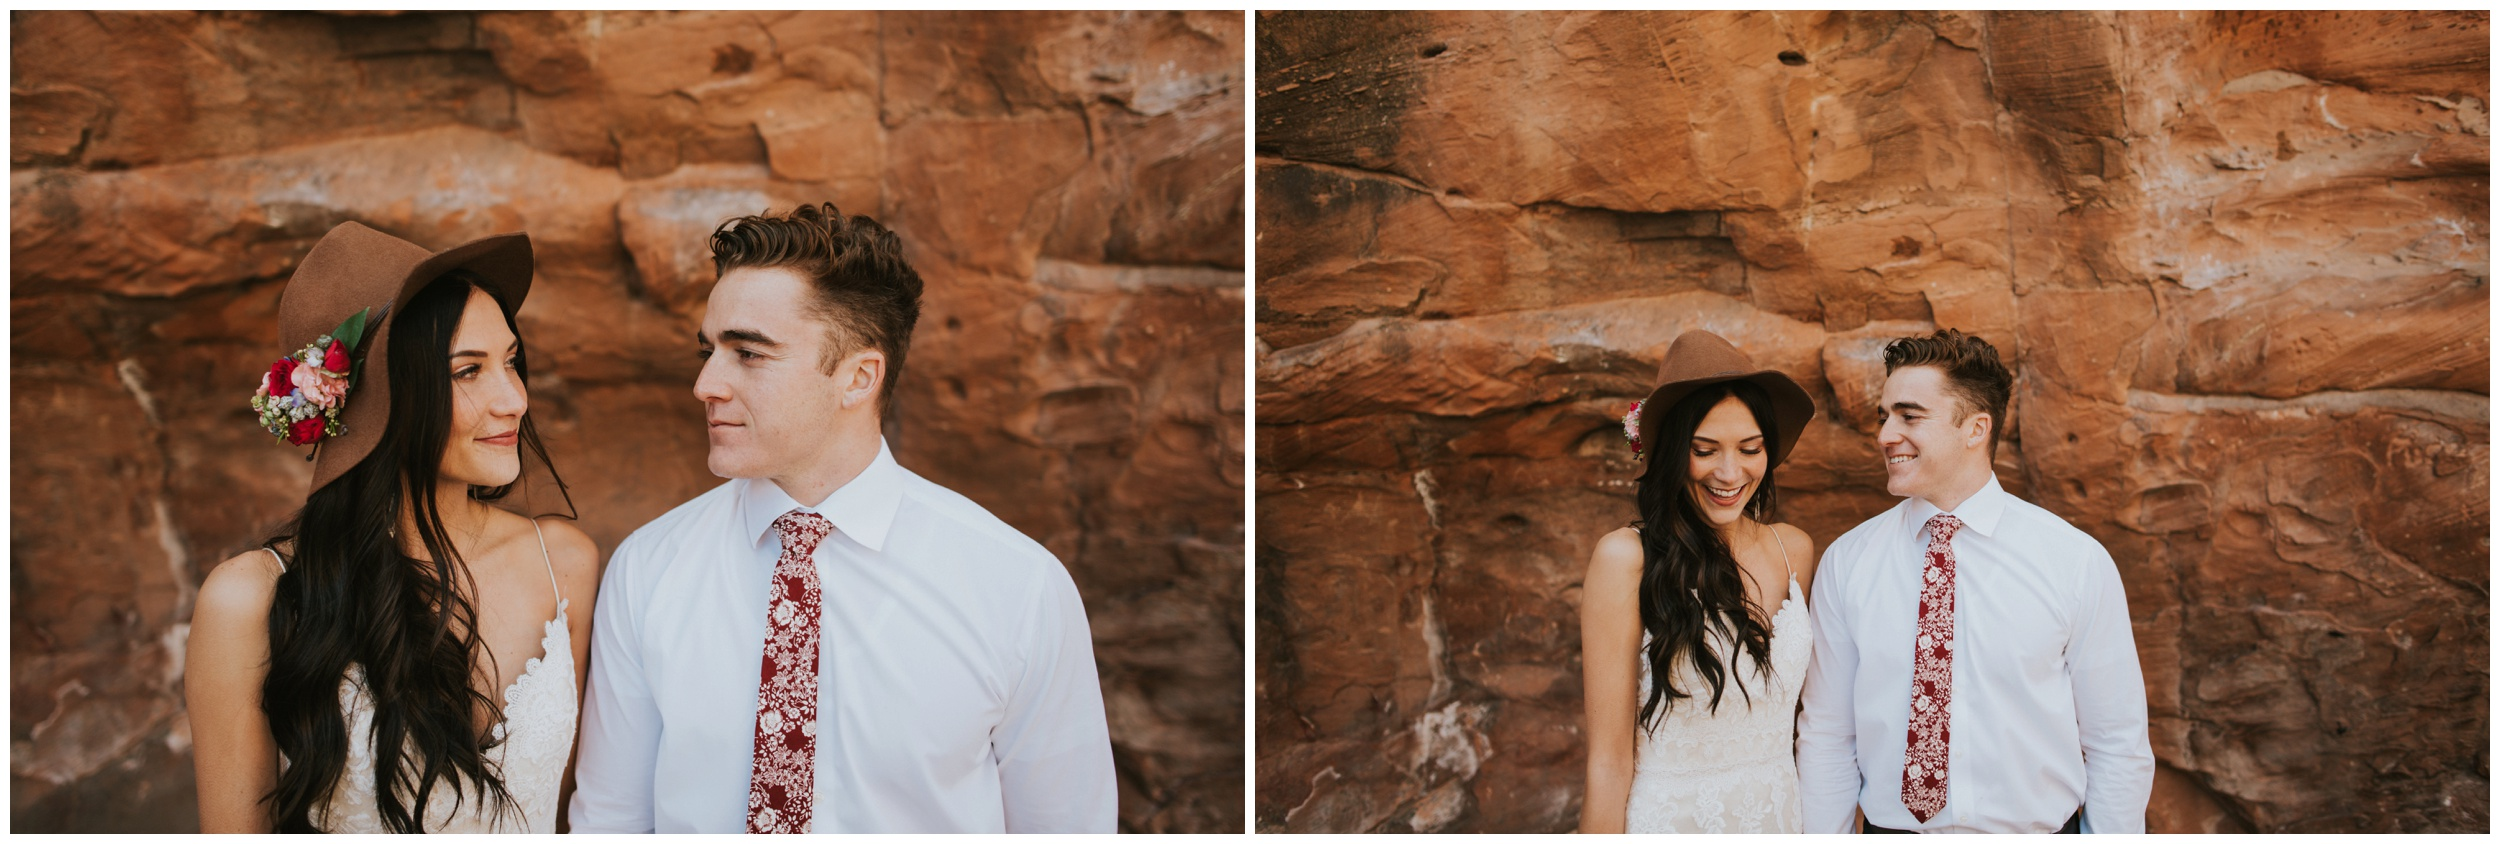 redrockutah-idahophotographer-utahphotographer-wedding-54.jpg